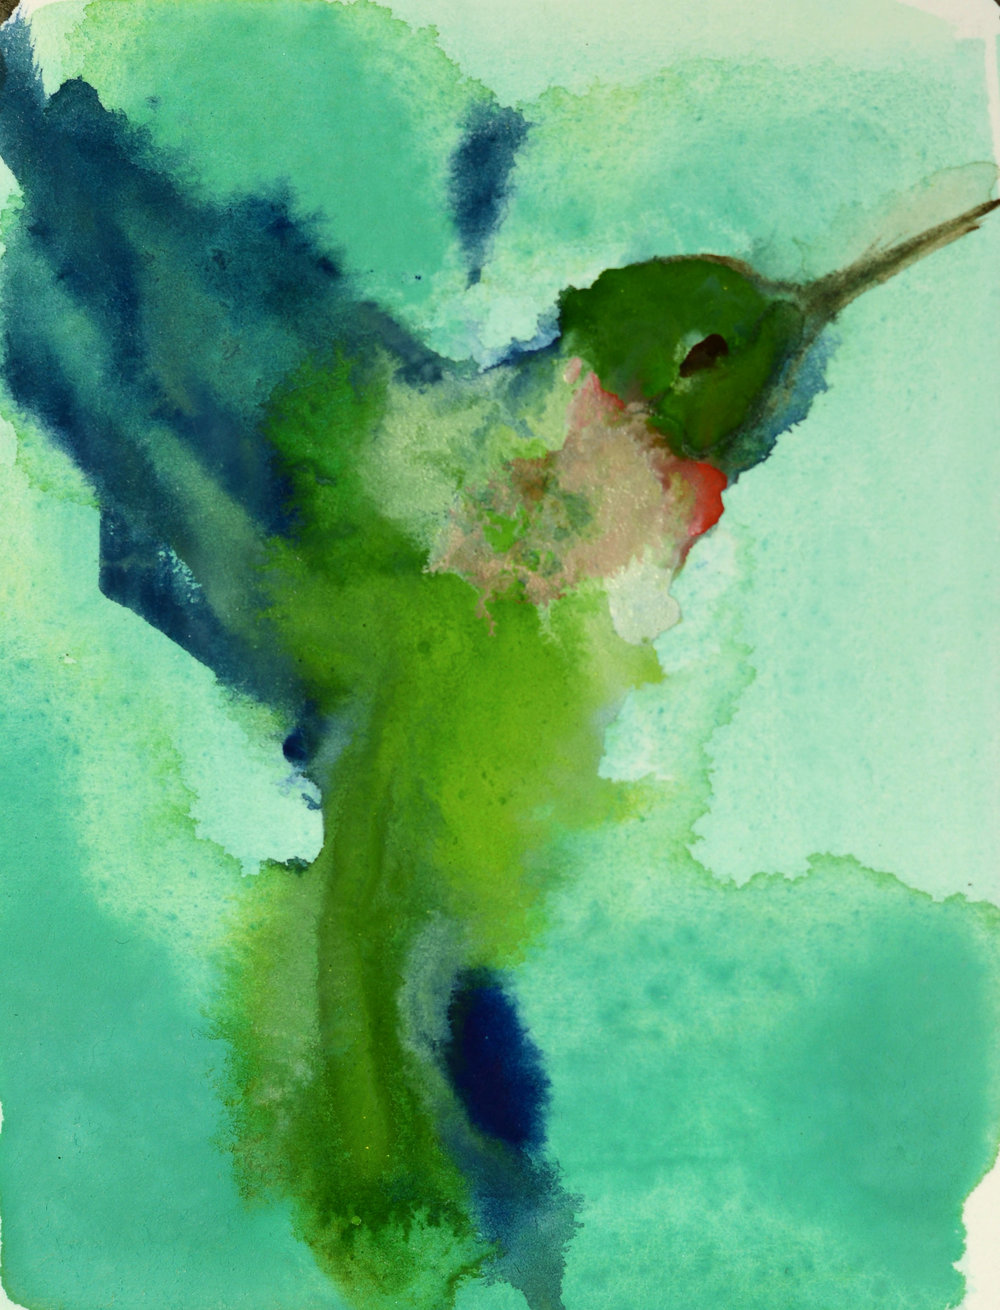 Rebecca_Kinkead_hummingbird no. 2_4x3 inset on 11x7.5 paper.jpg